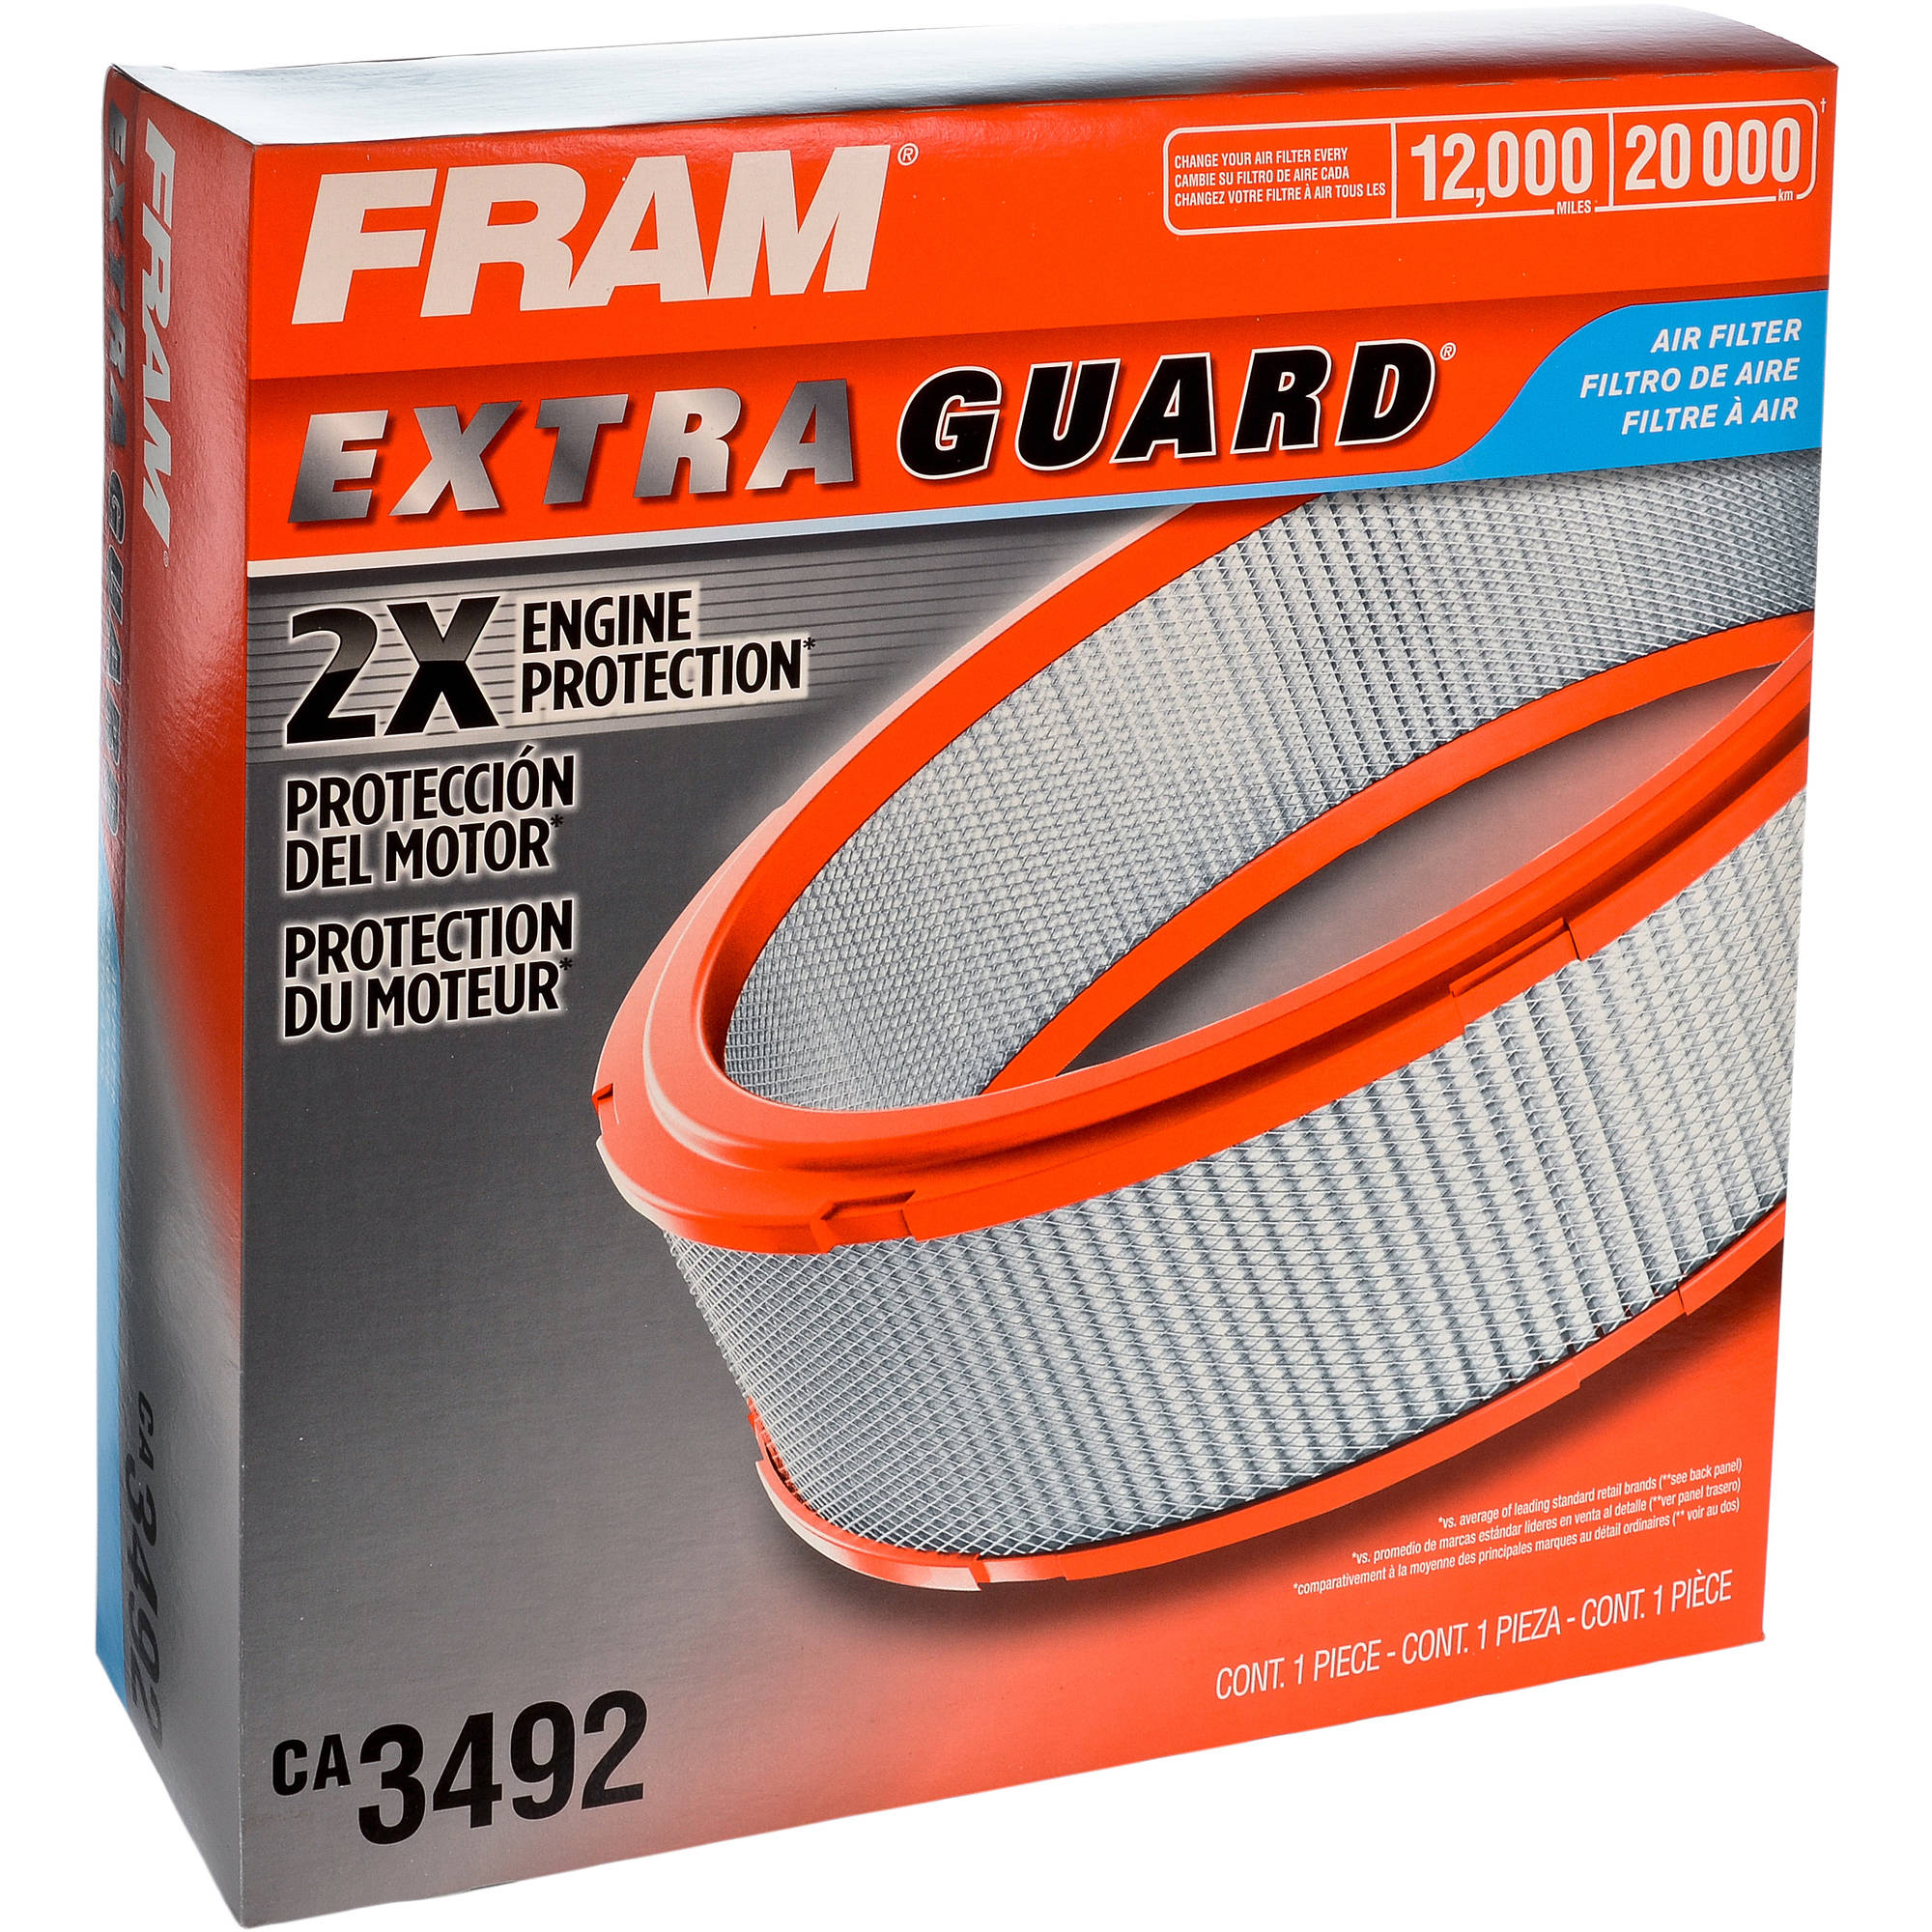 FRAM Extra Guard Air Filter, CA3492